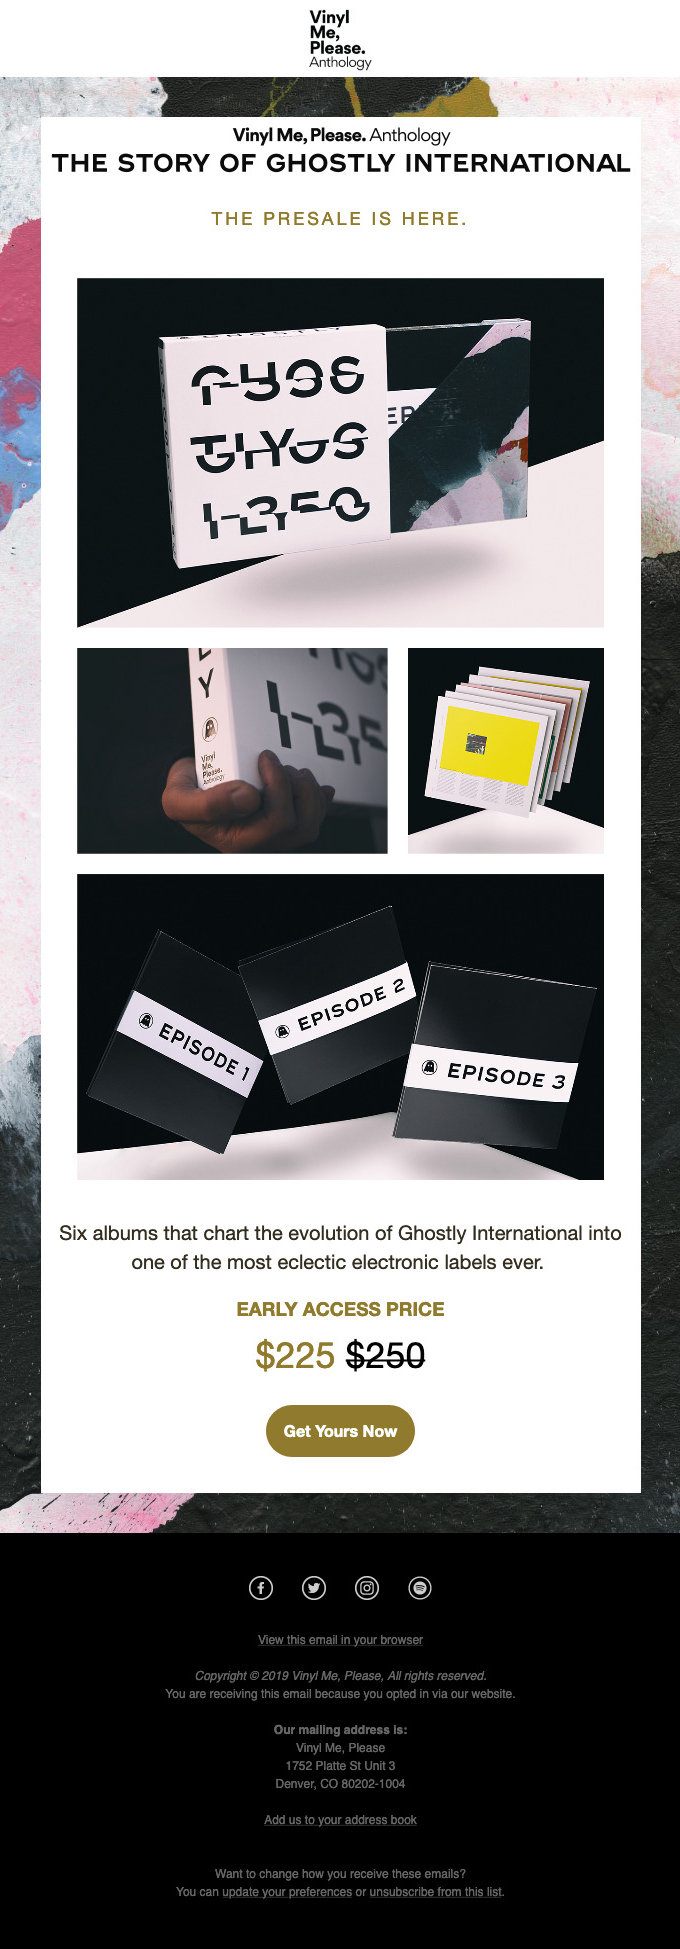 🔥Starting NOW! The Story of Ghostly International presale is here.